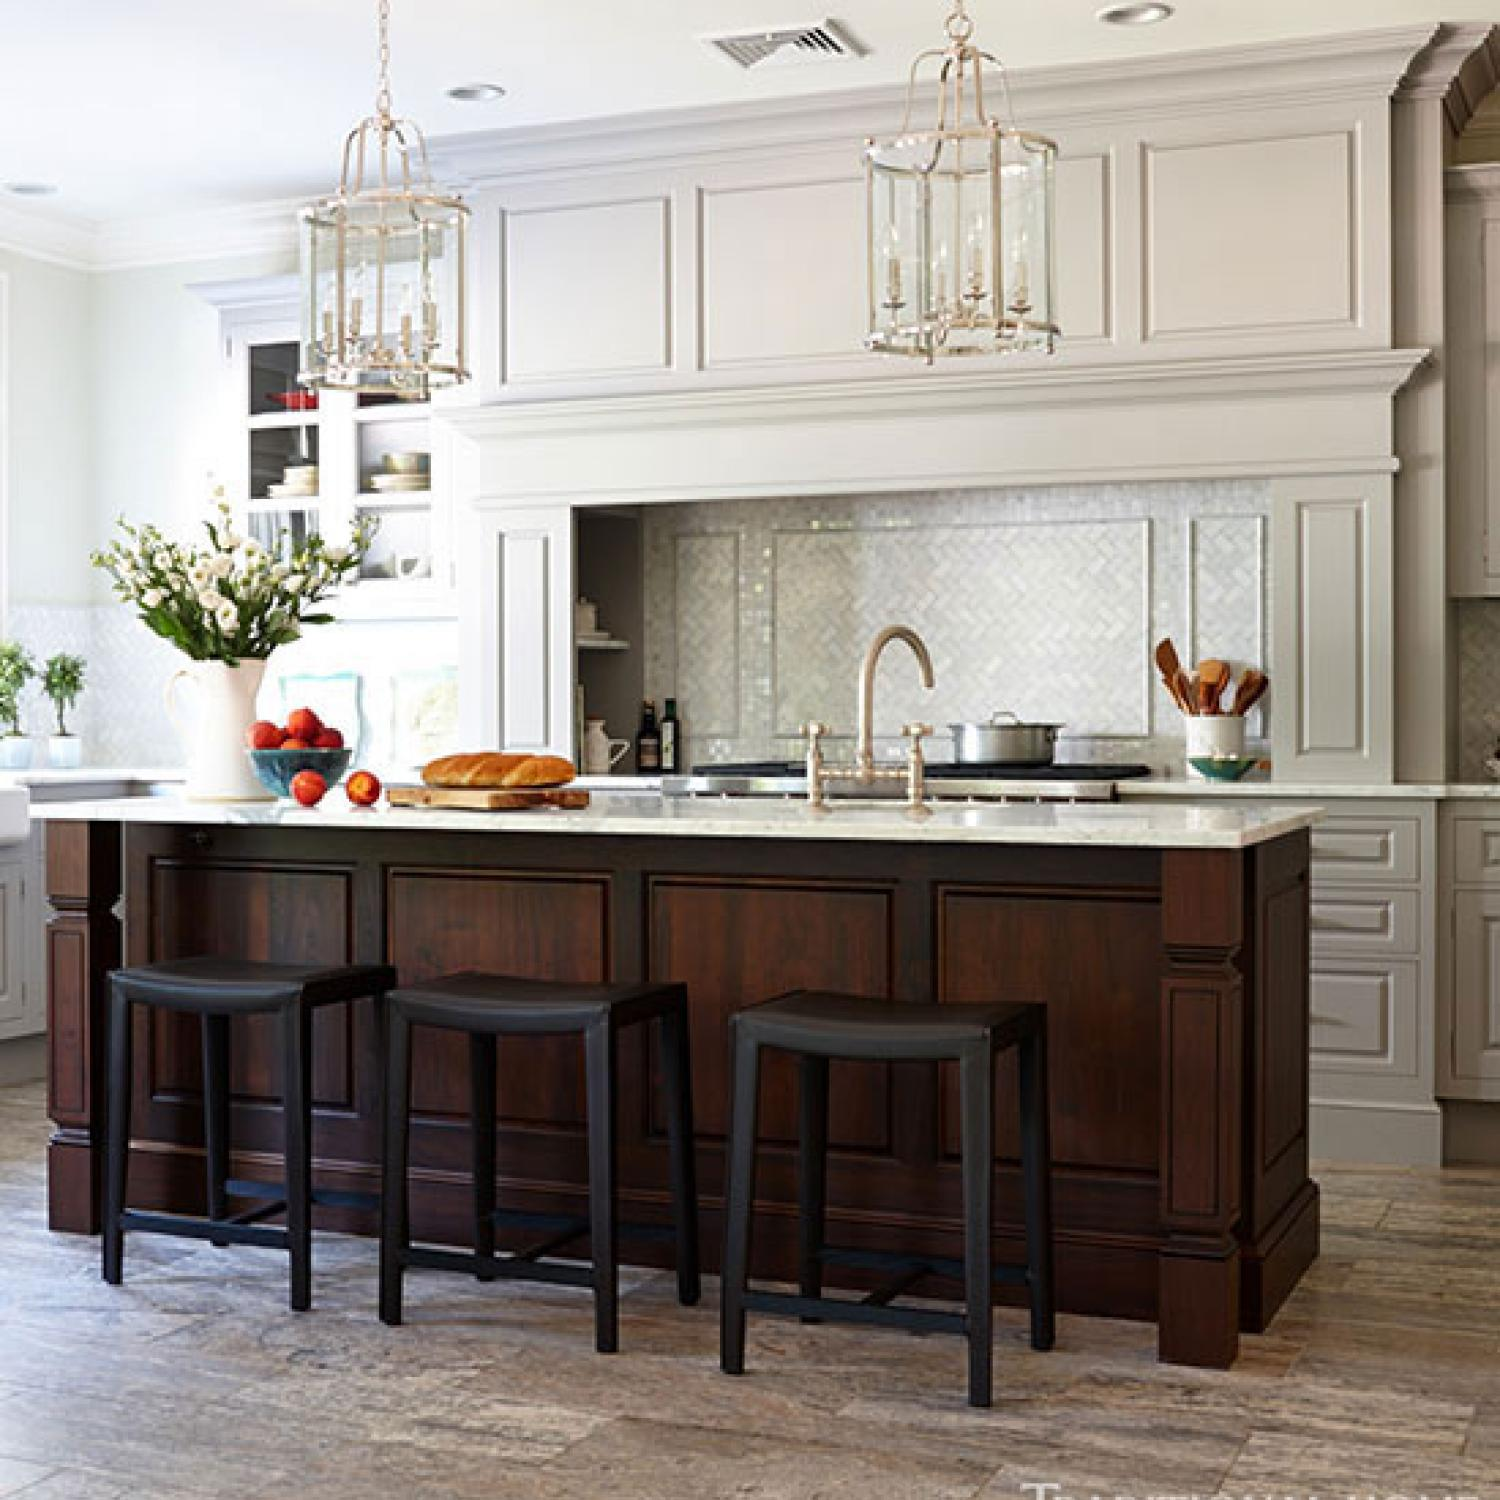 Organized, Efficient Kitchen with Cool and Classic Styling ... on Traditional Kitchen Decor  id=40455